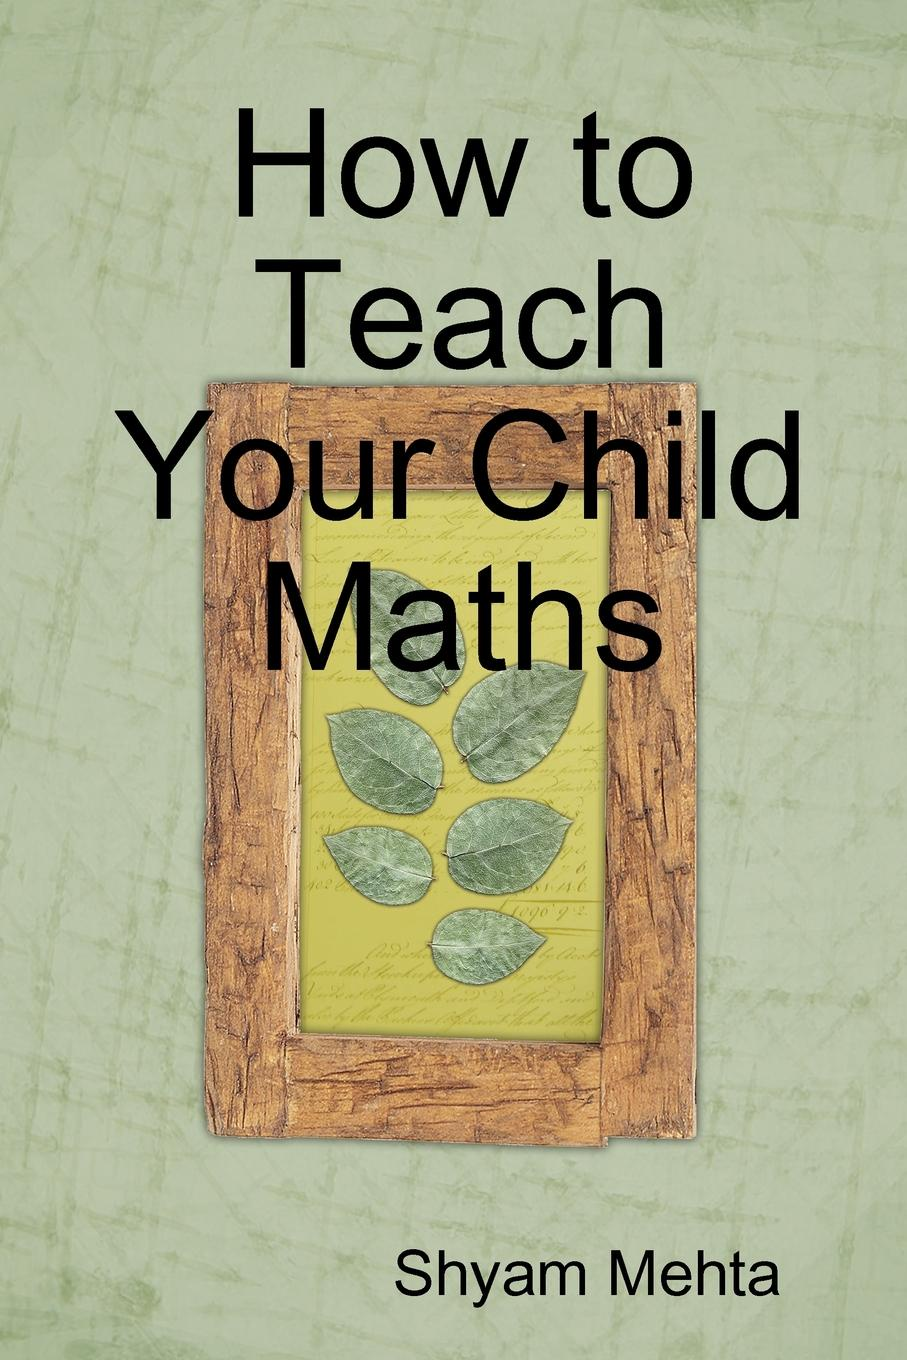 Shyam Mehta How to Teach Your Child Maths shyam mehta stories for children spanish edition